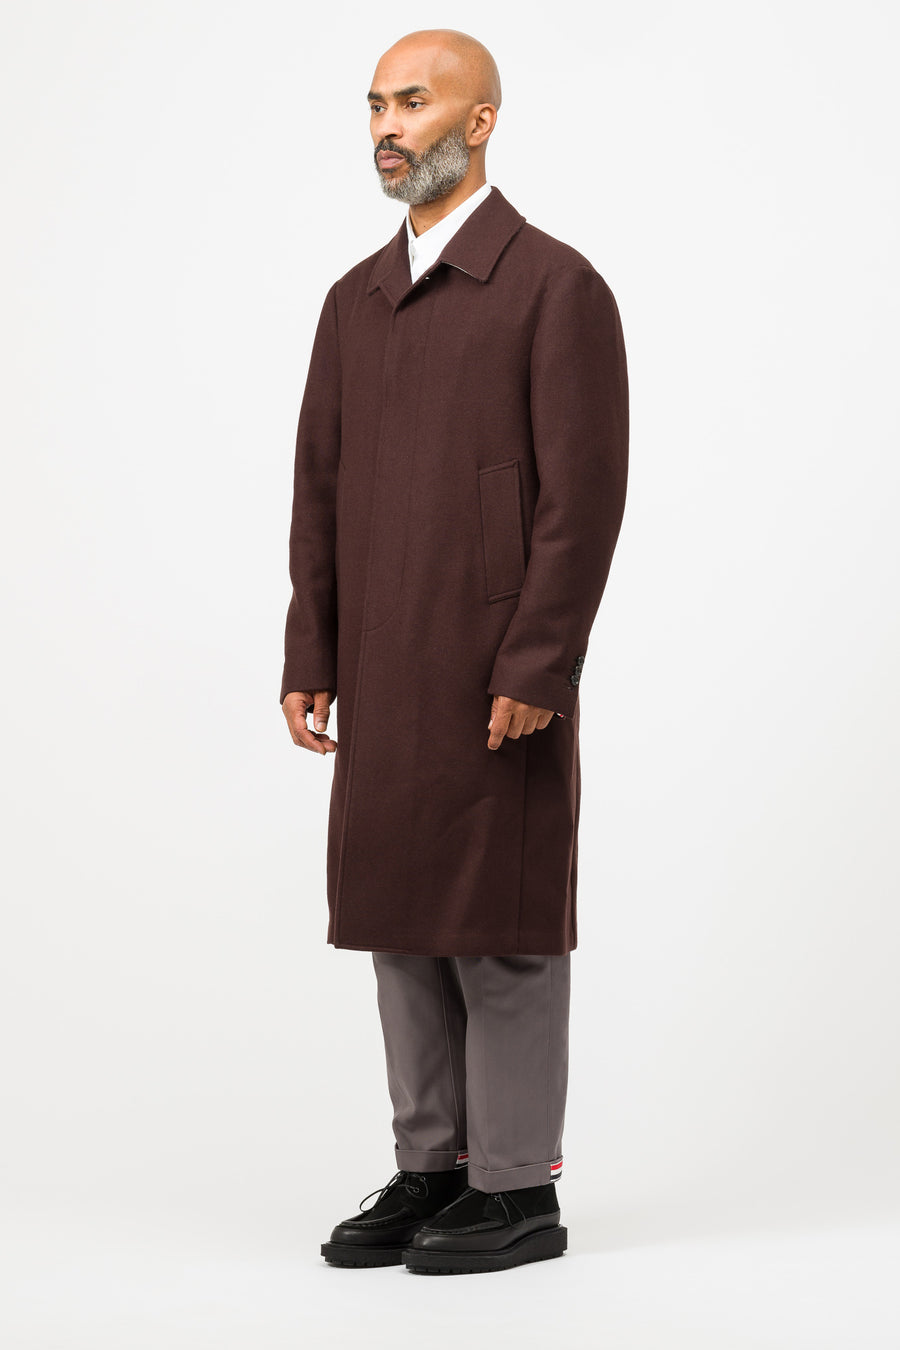 Thom Browne Unconstructed Relaxed Bal Collar Coat in Burgundy - Notre